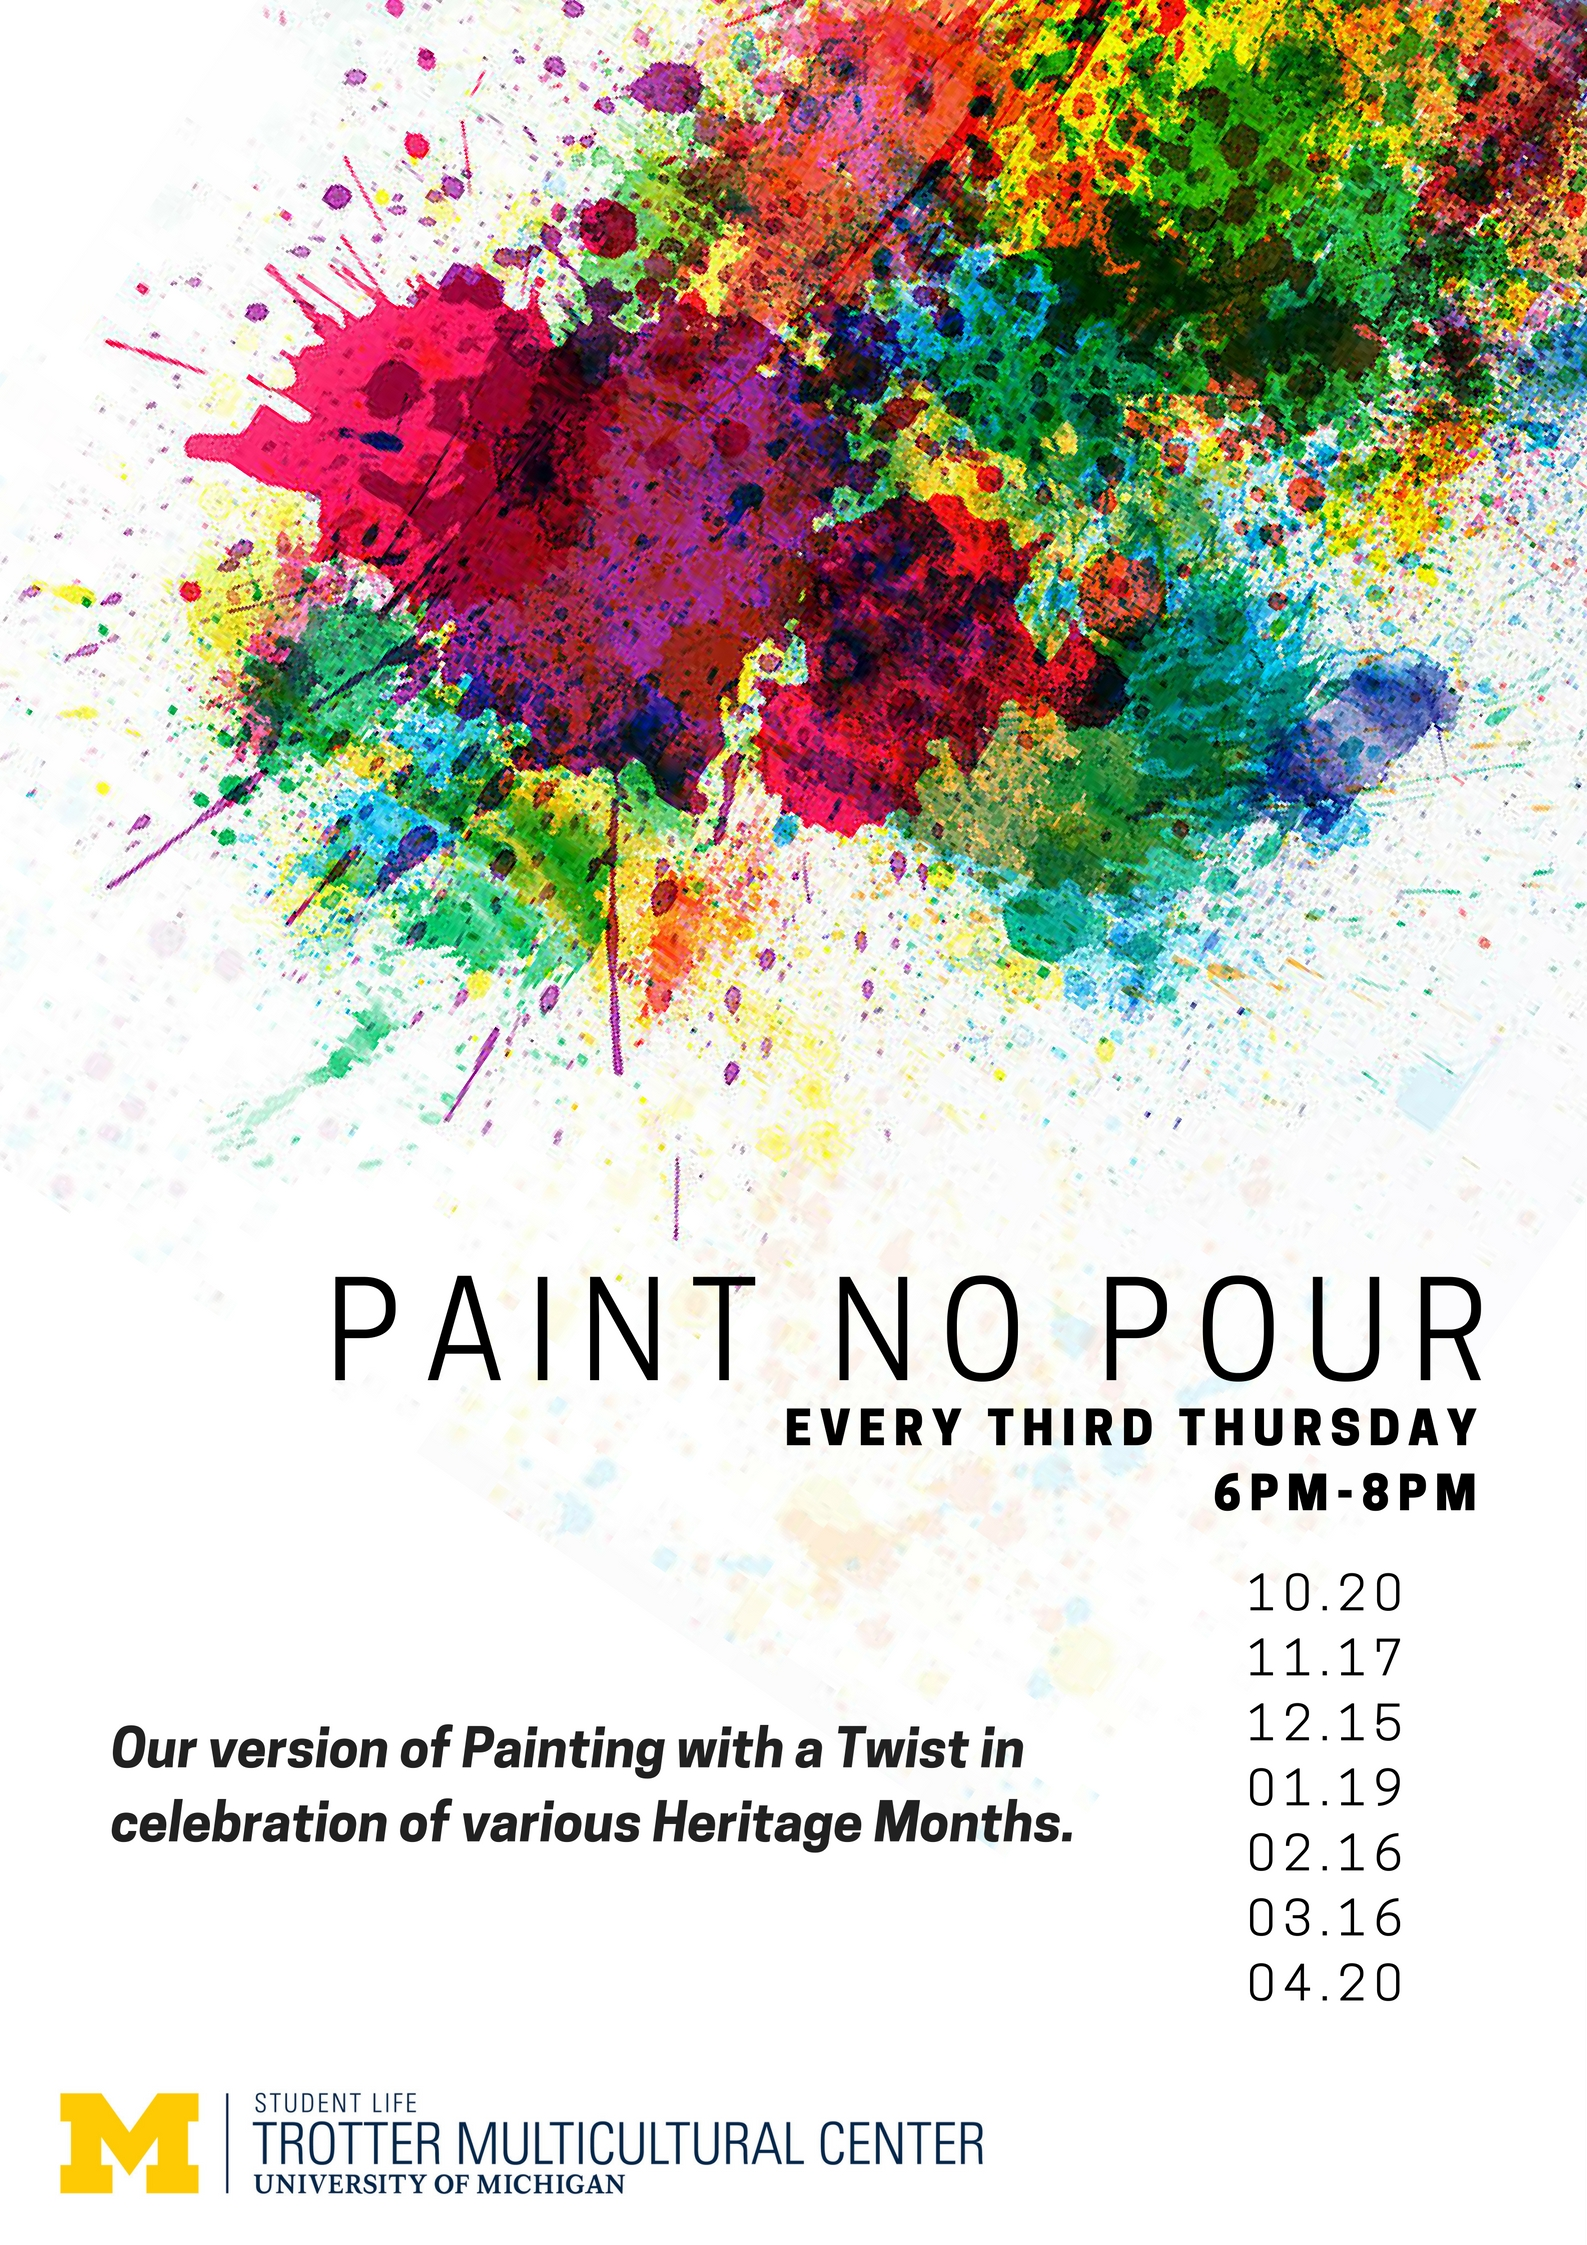 Flyer for Paint No Pour. All information in graphic contained in article.